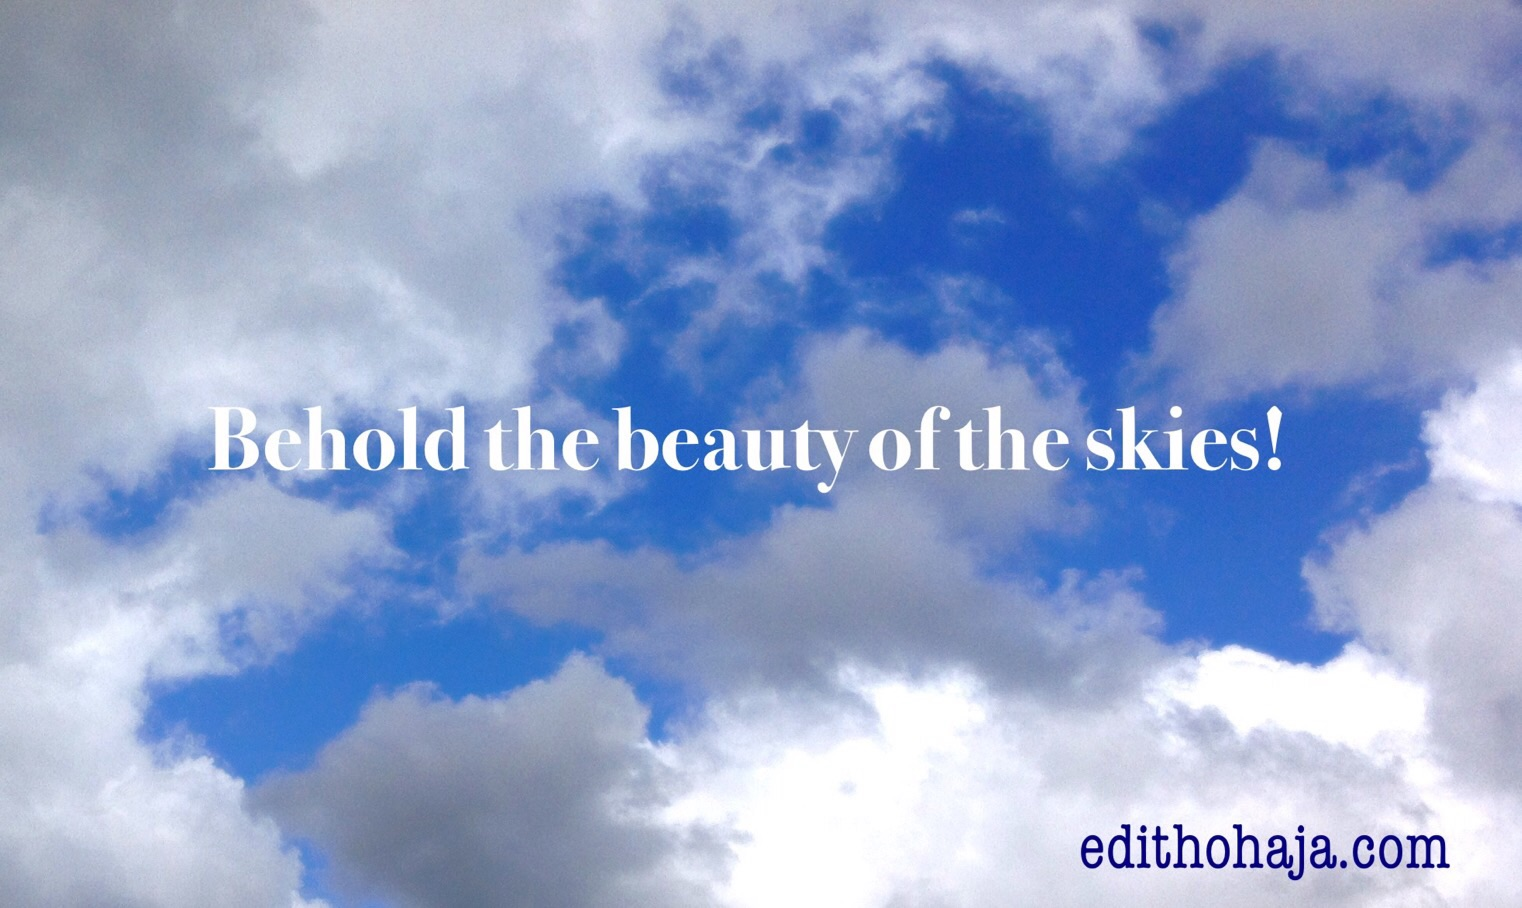 BEHOLD THE BEAUTY OF THE SKIES! (POEM)